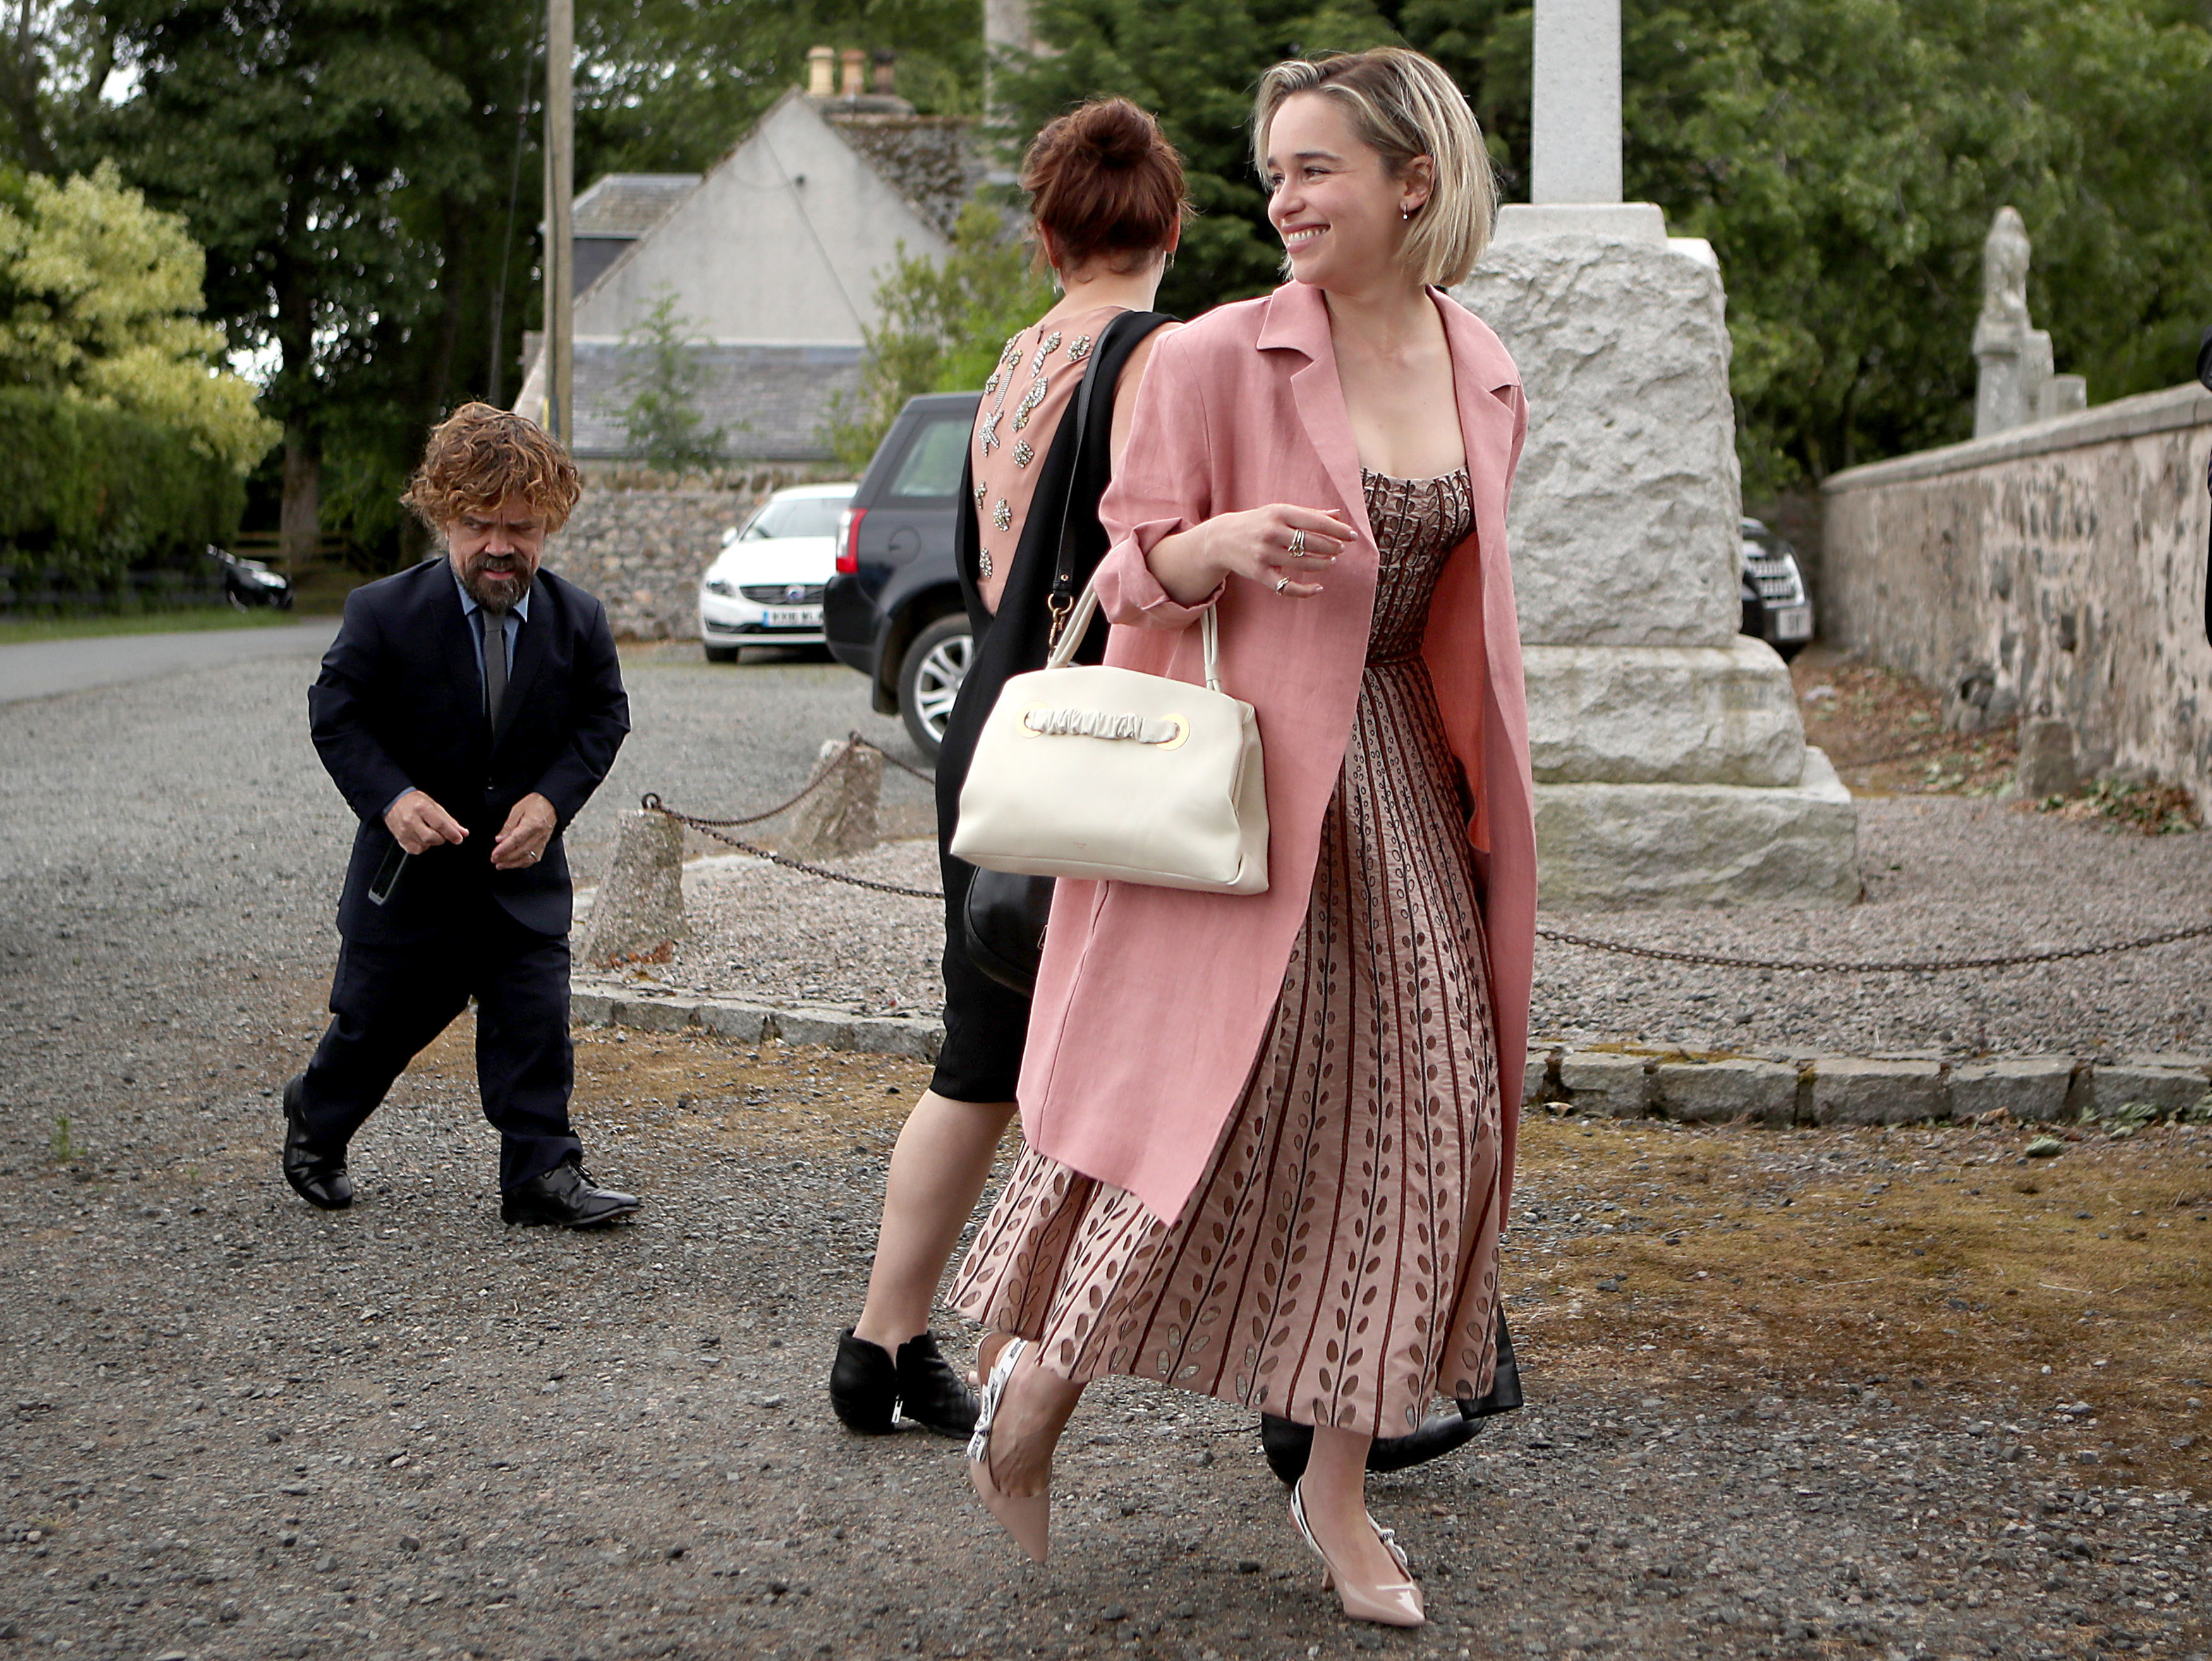 Actors Peter Dinklage and Emilia Clarke arrive at Rayne Church, Kirkton of Rayne in Aberdeenshire, for the wedding ceremony of their Game Of Thrones co stars Kit Harington and Rose Leslie on June 23, 2018.